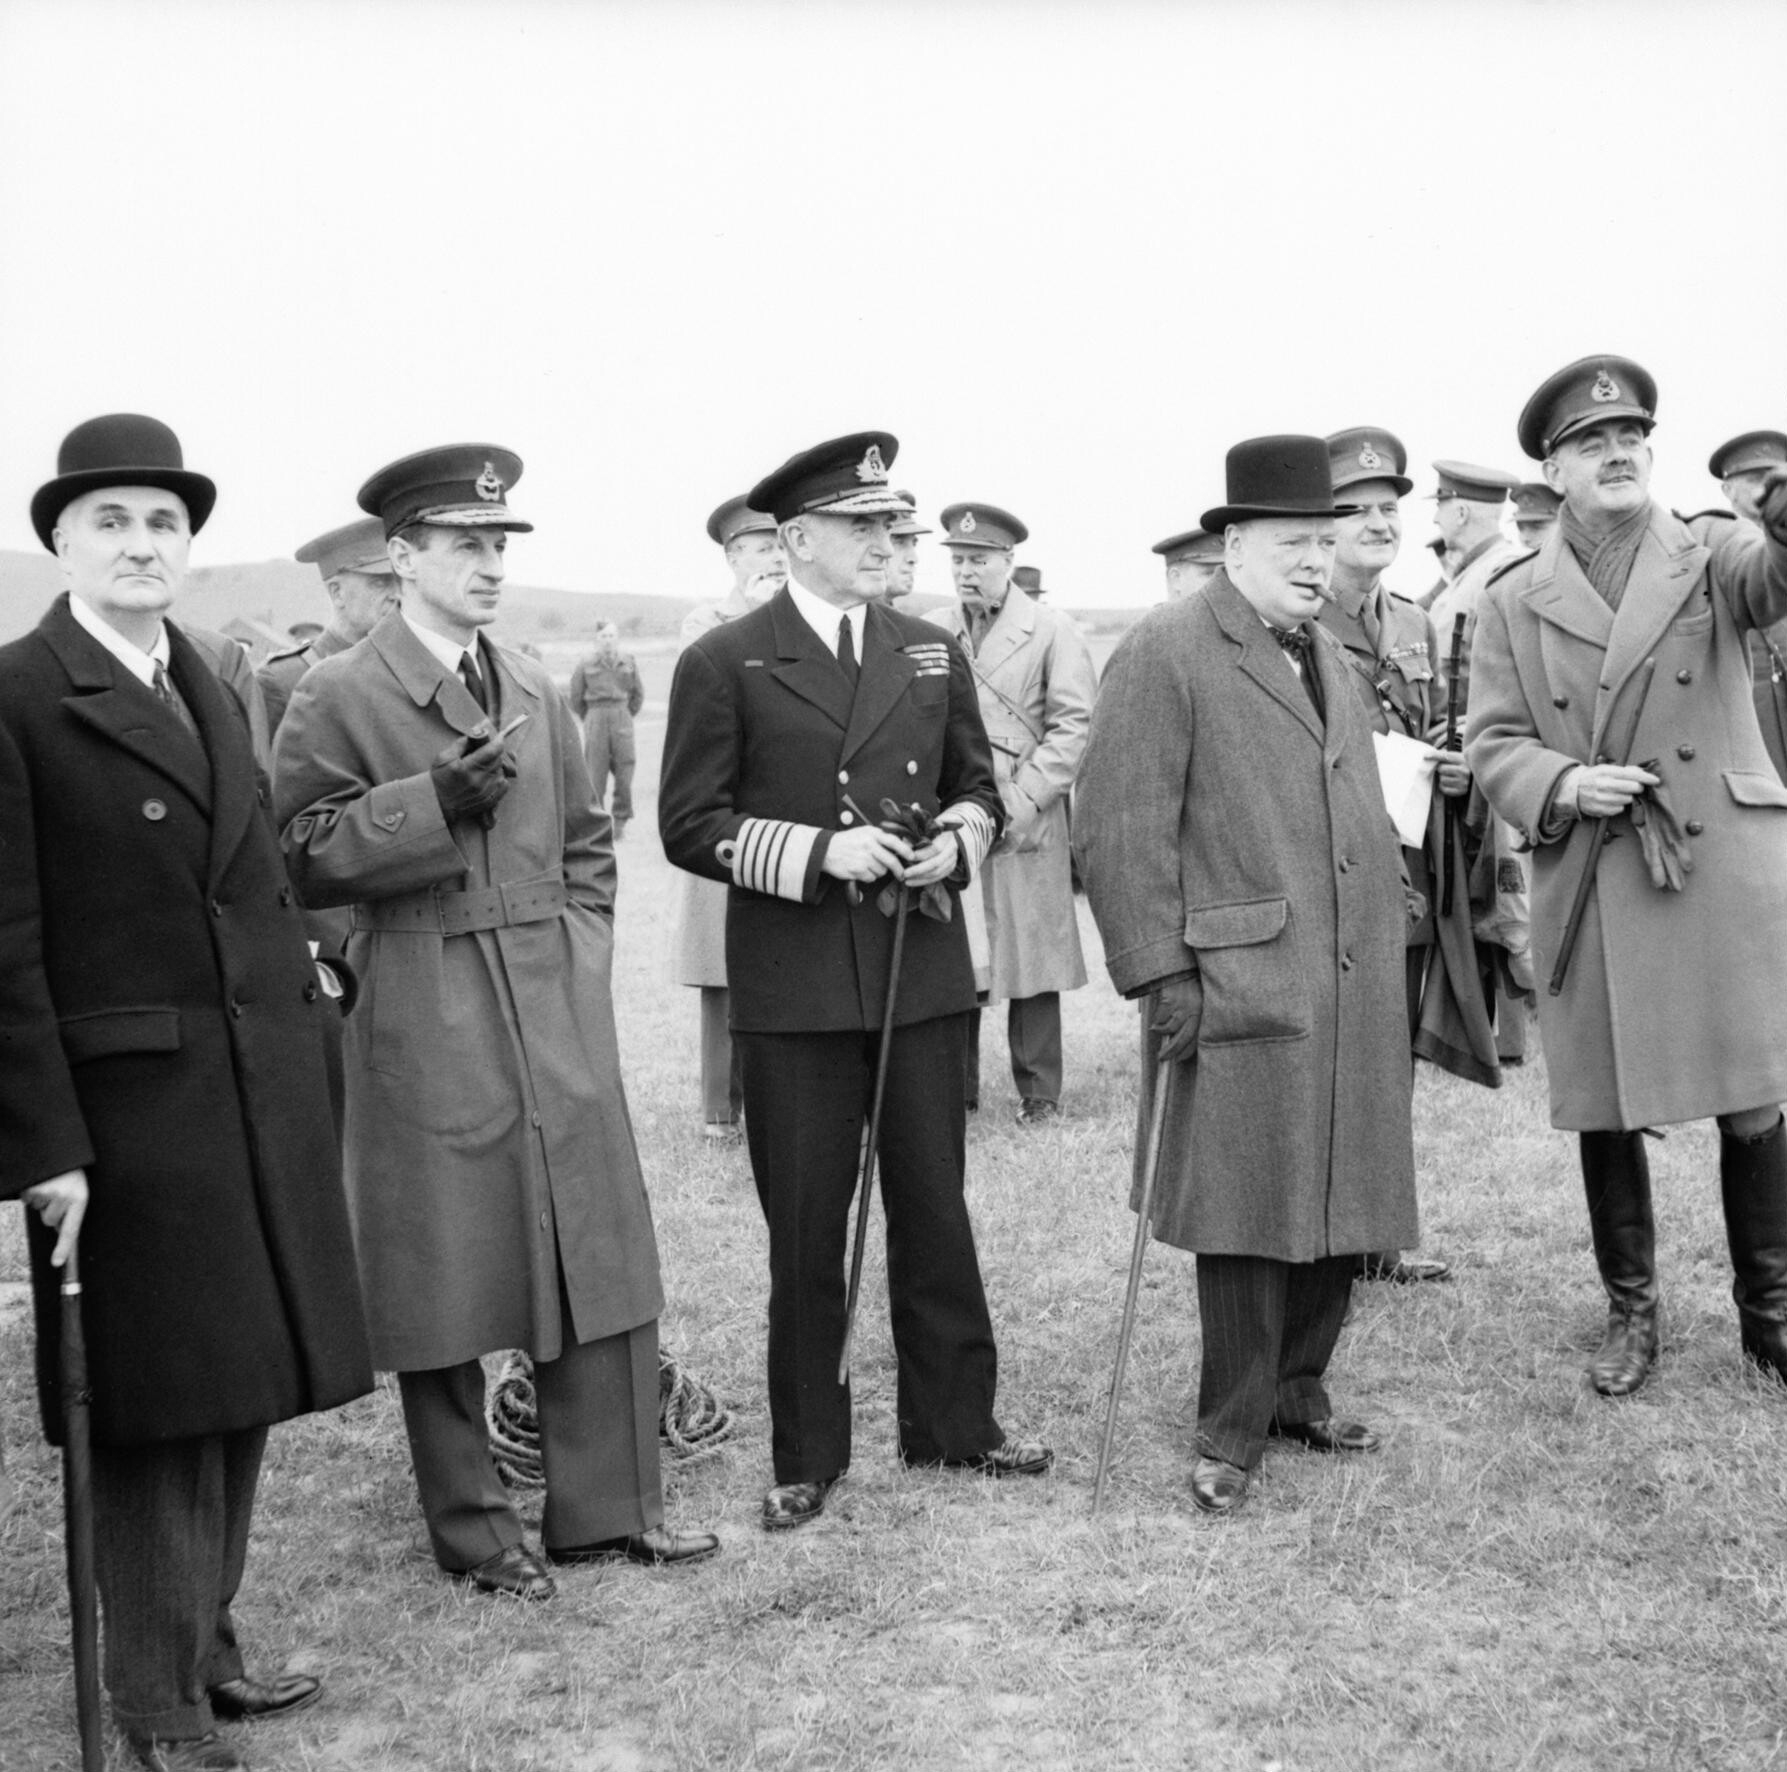 Winston Churchill with his scientific advisor Lord Cherwell (furthest to the left), Air Chief Marshal Sir Charles Portal and Admiral of the Fleet Sir Dudley Pound, watching a display of anti-aircraft gunnery, June 1941. Photograph owned by the Imperial War Museum.